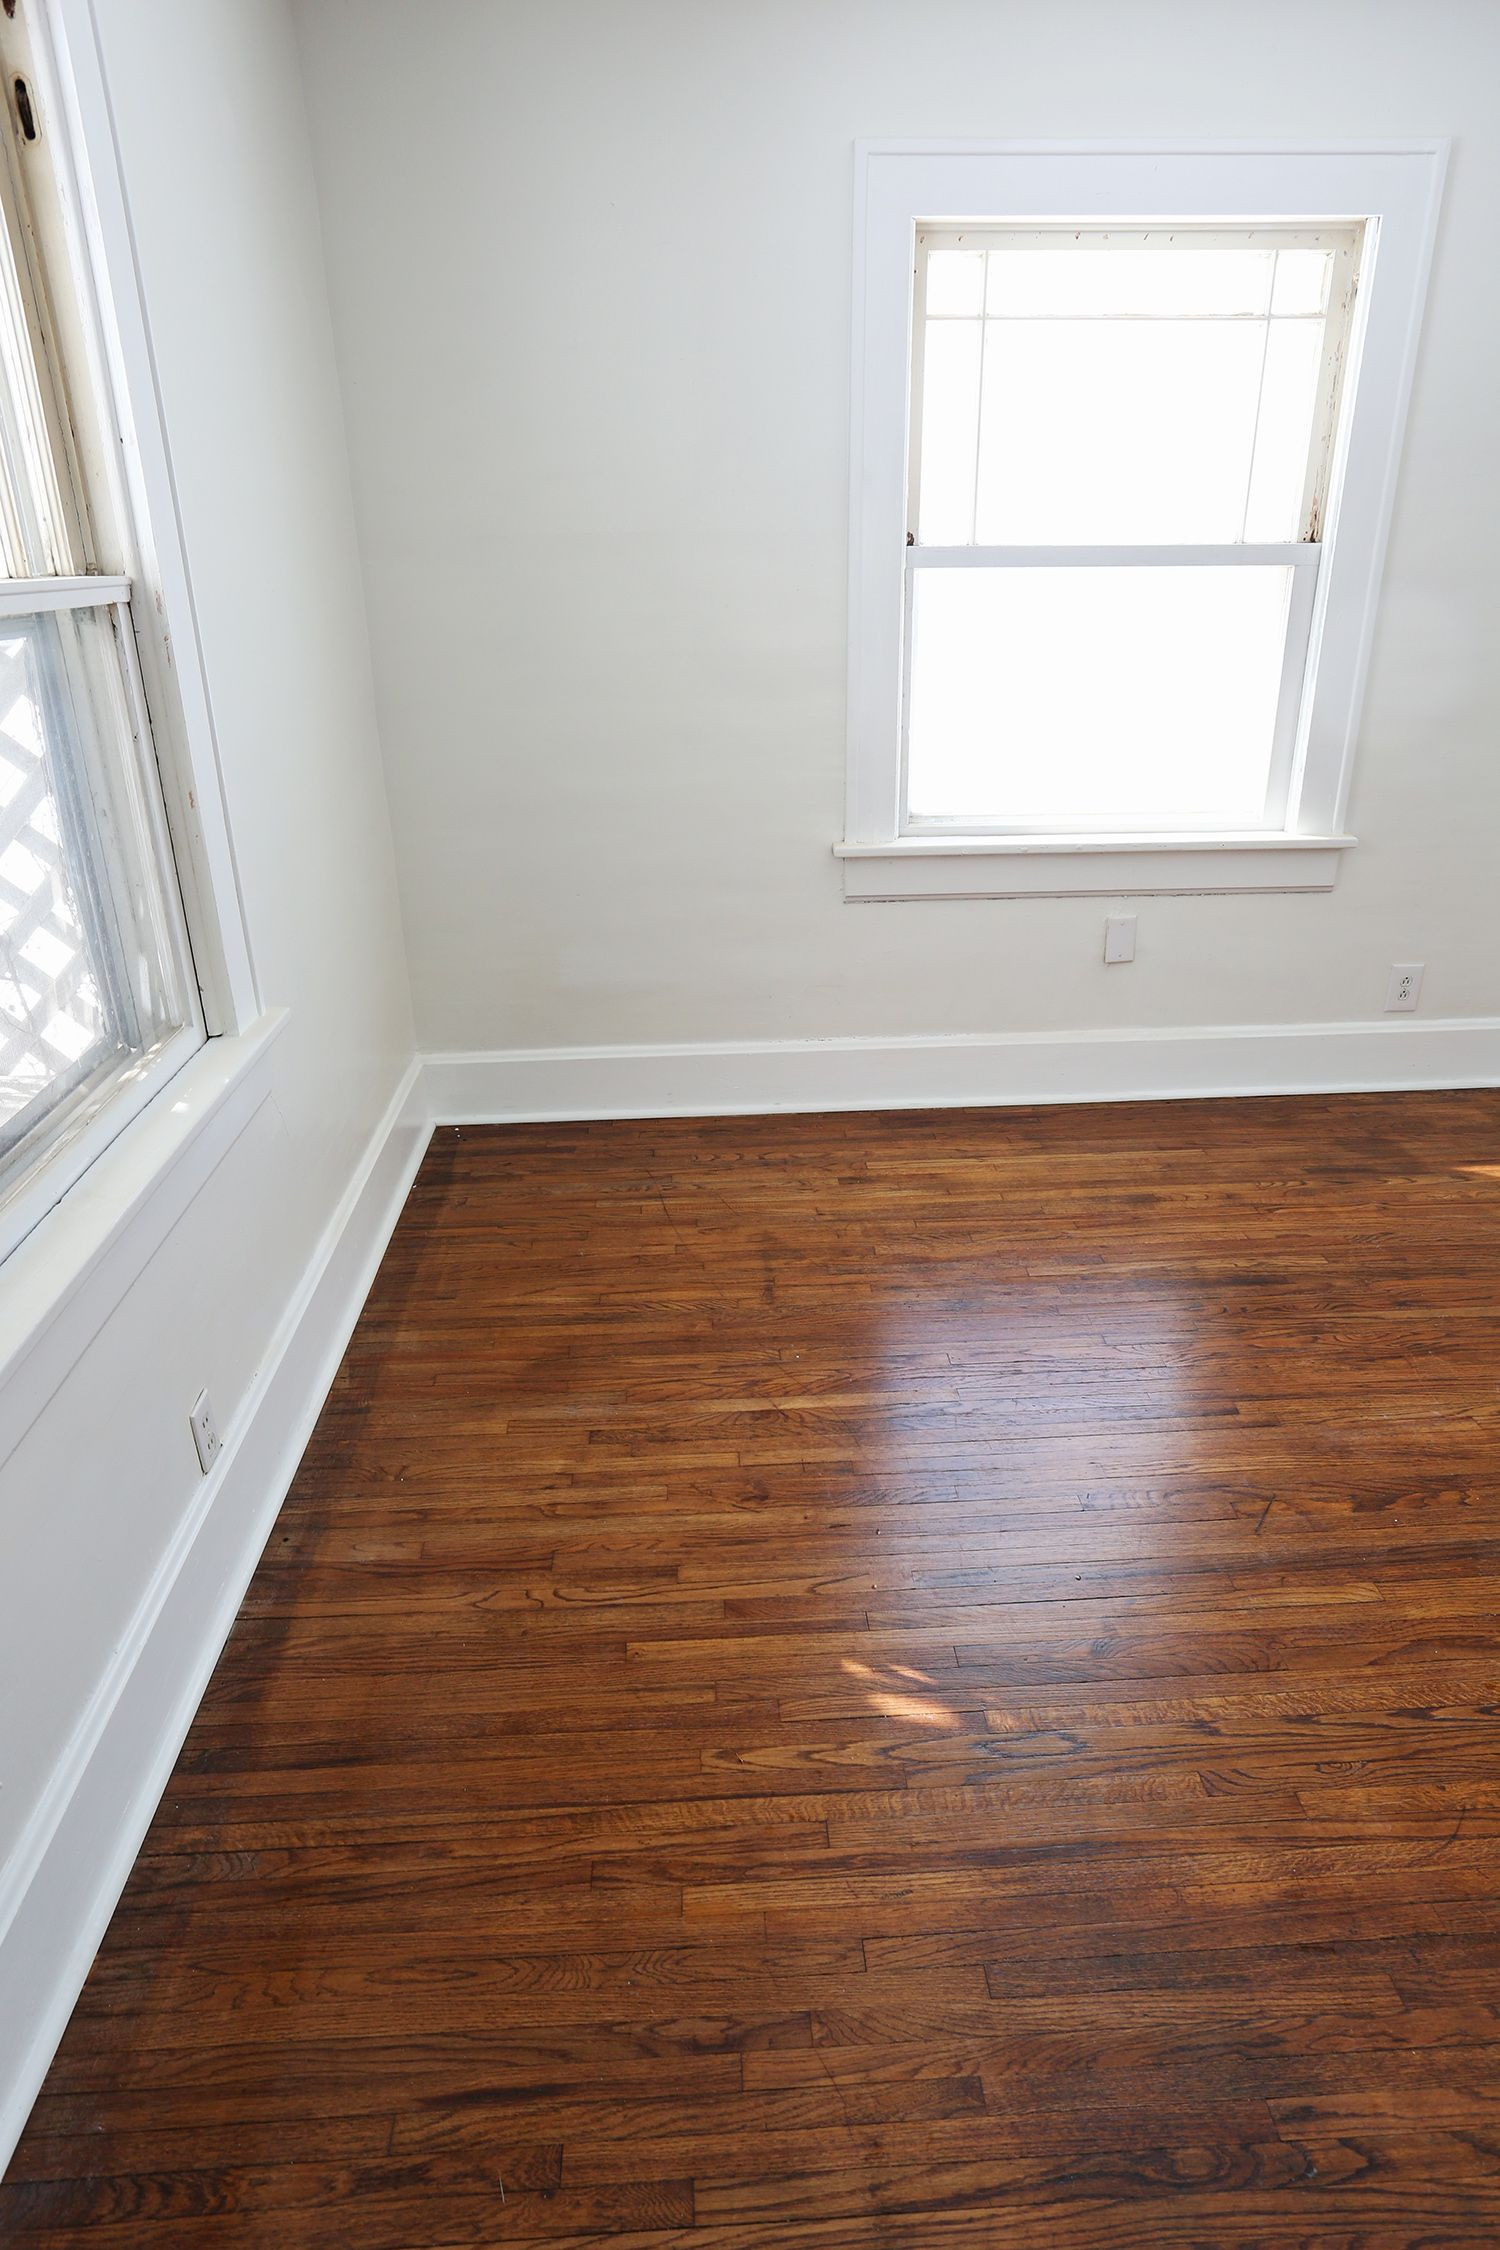 Refinishing Old Wood Floors Home Improvement Pinterest How To Lay A Hardwood Floor Tips Restore Diy Refinish Cheap